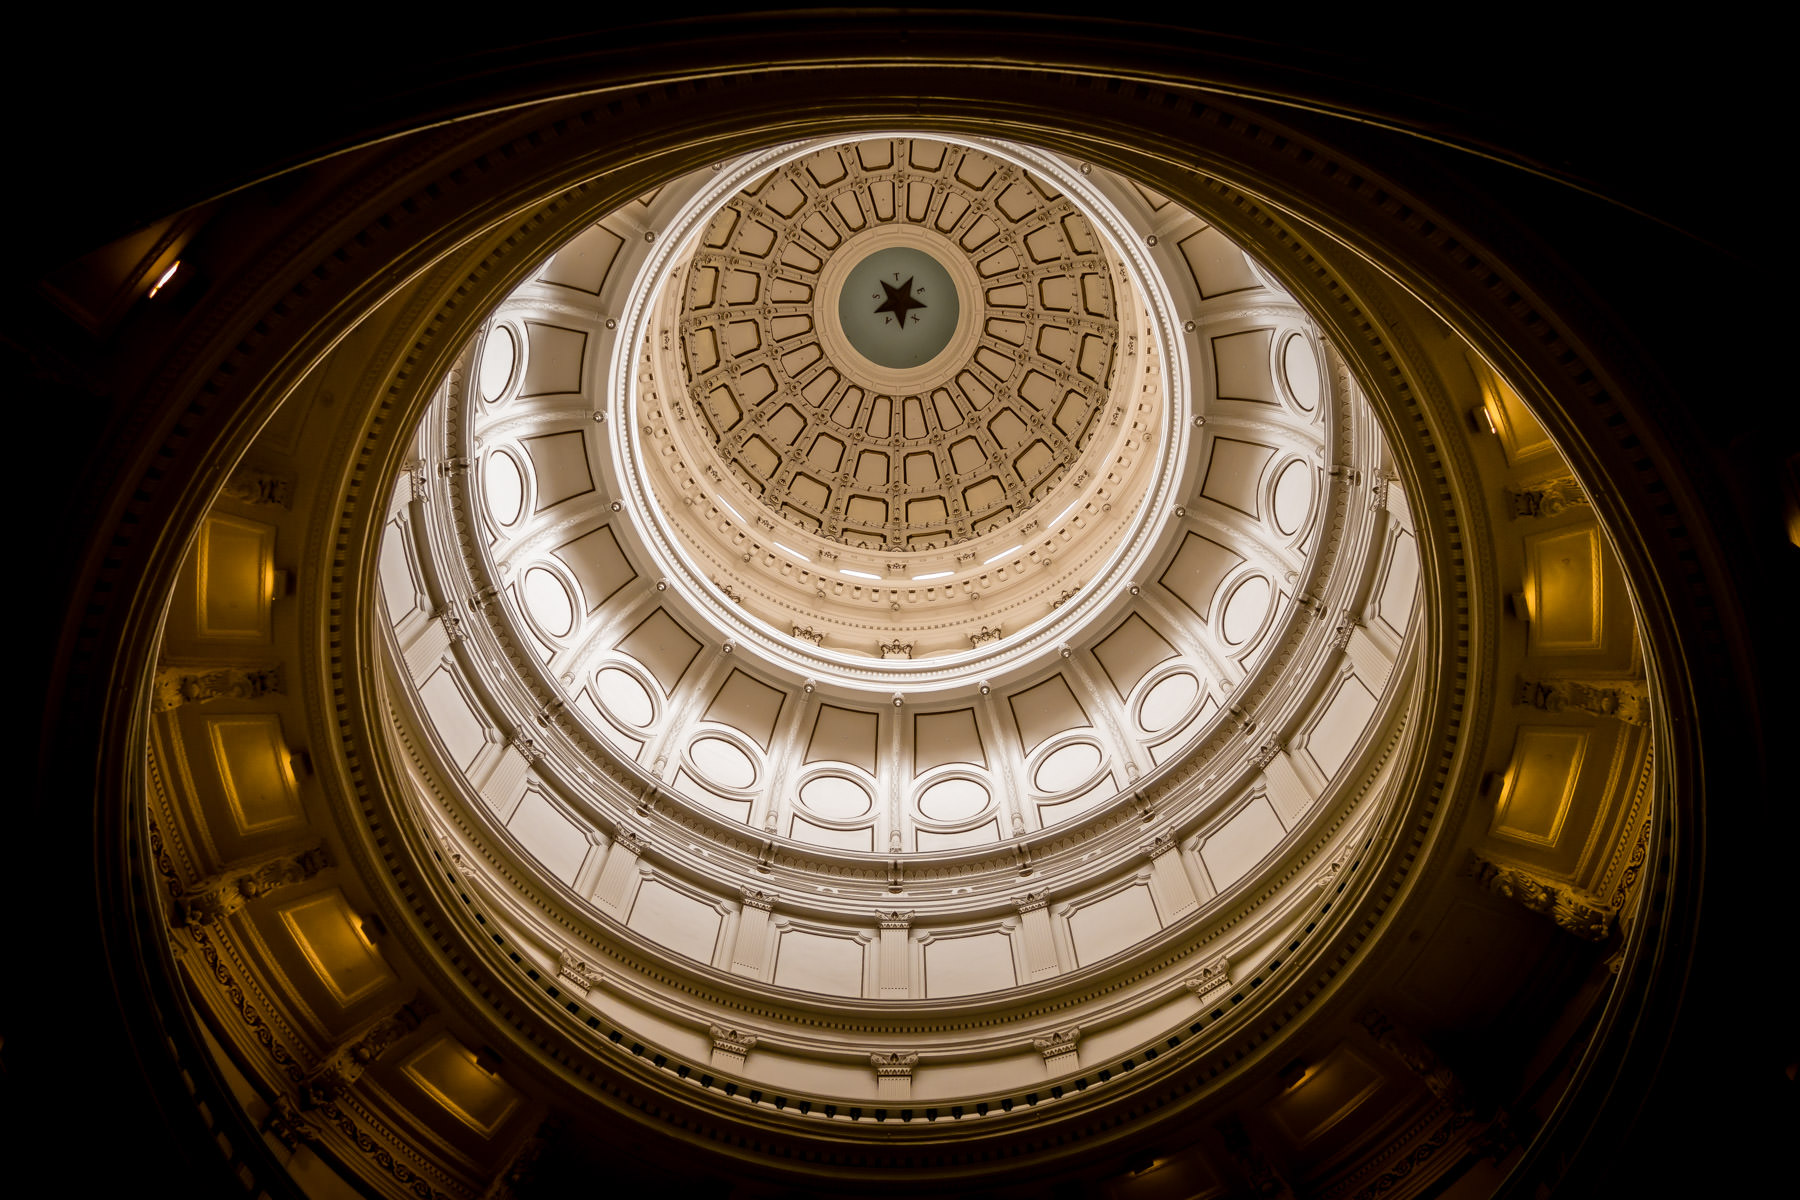 Interior detail of the rotunda and dome of the Texas State Capitol, Austin.